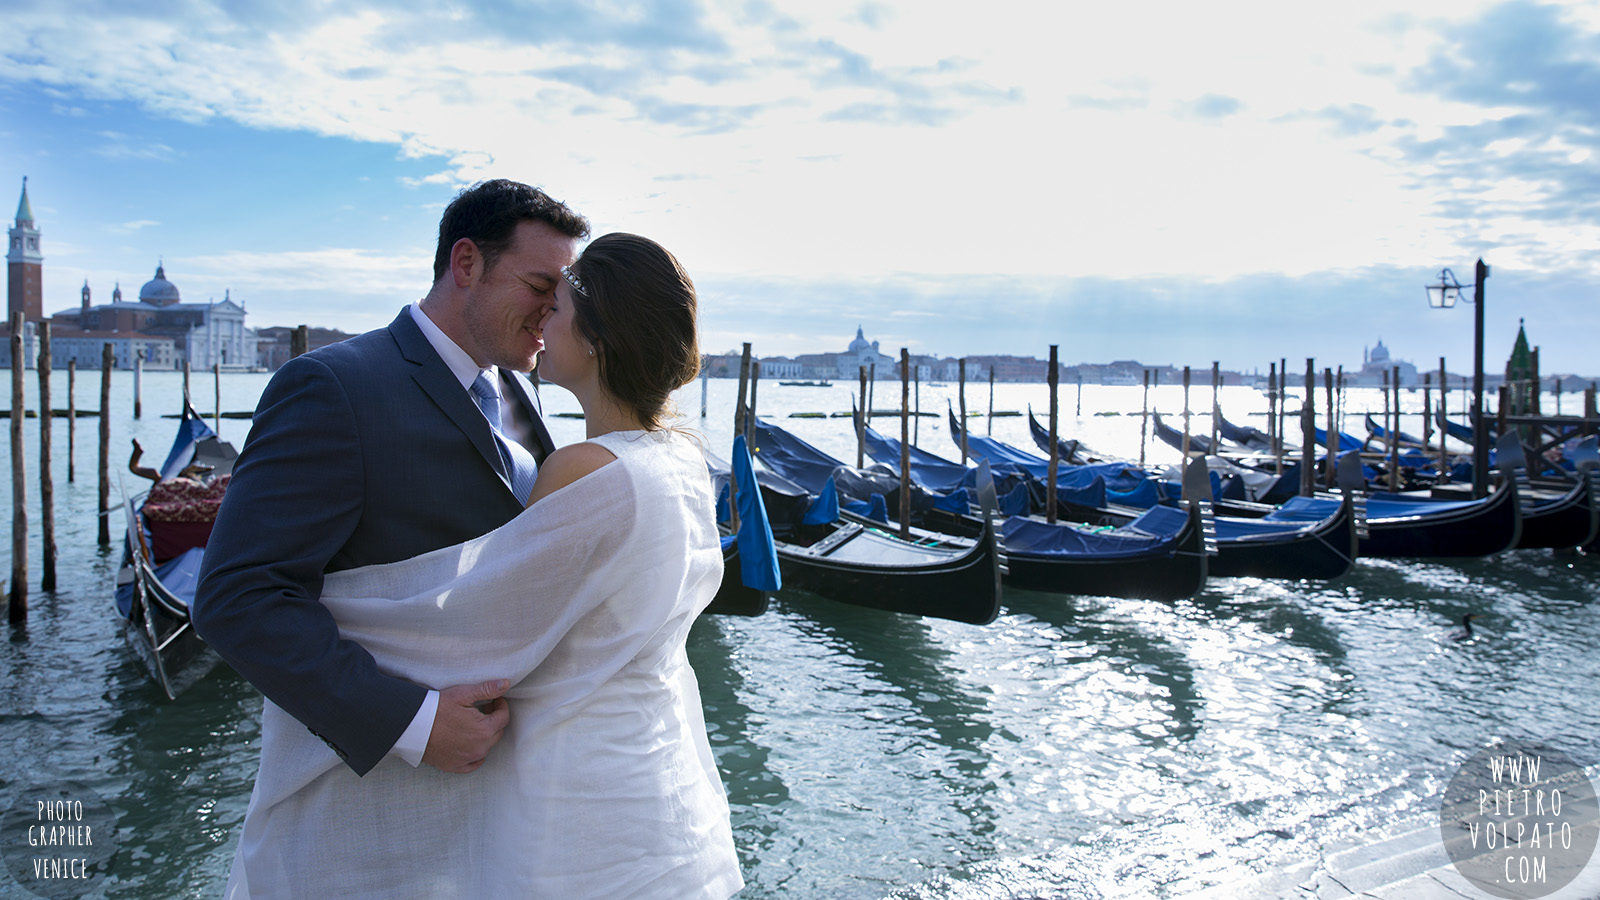 venice-wedding-photographer-honeymoon-photoshoot-for-couple-romantic-vacation-tour-20161114_01